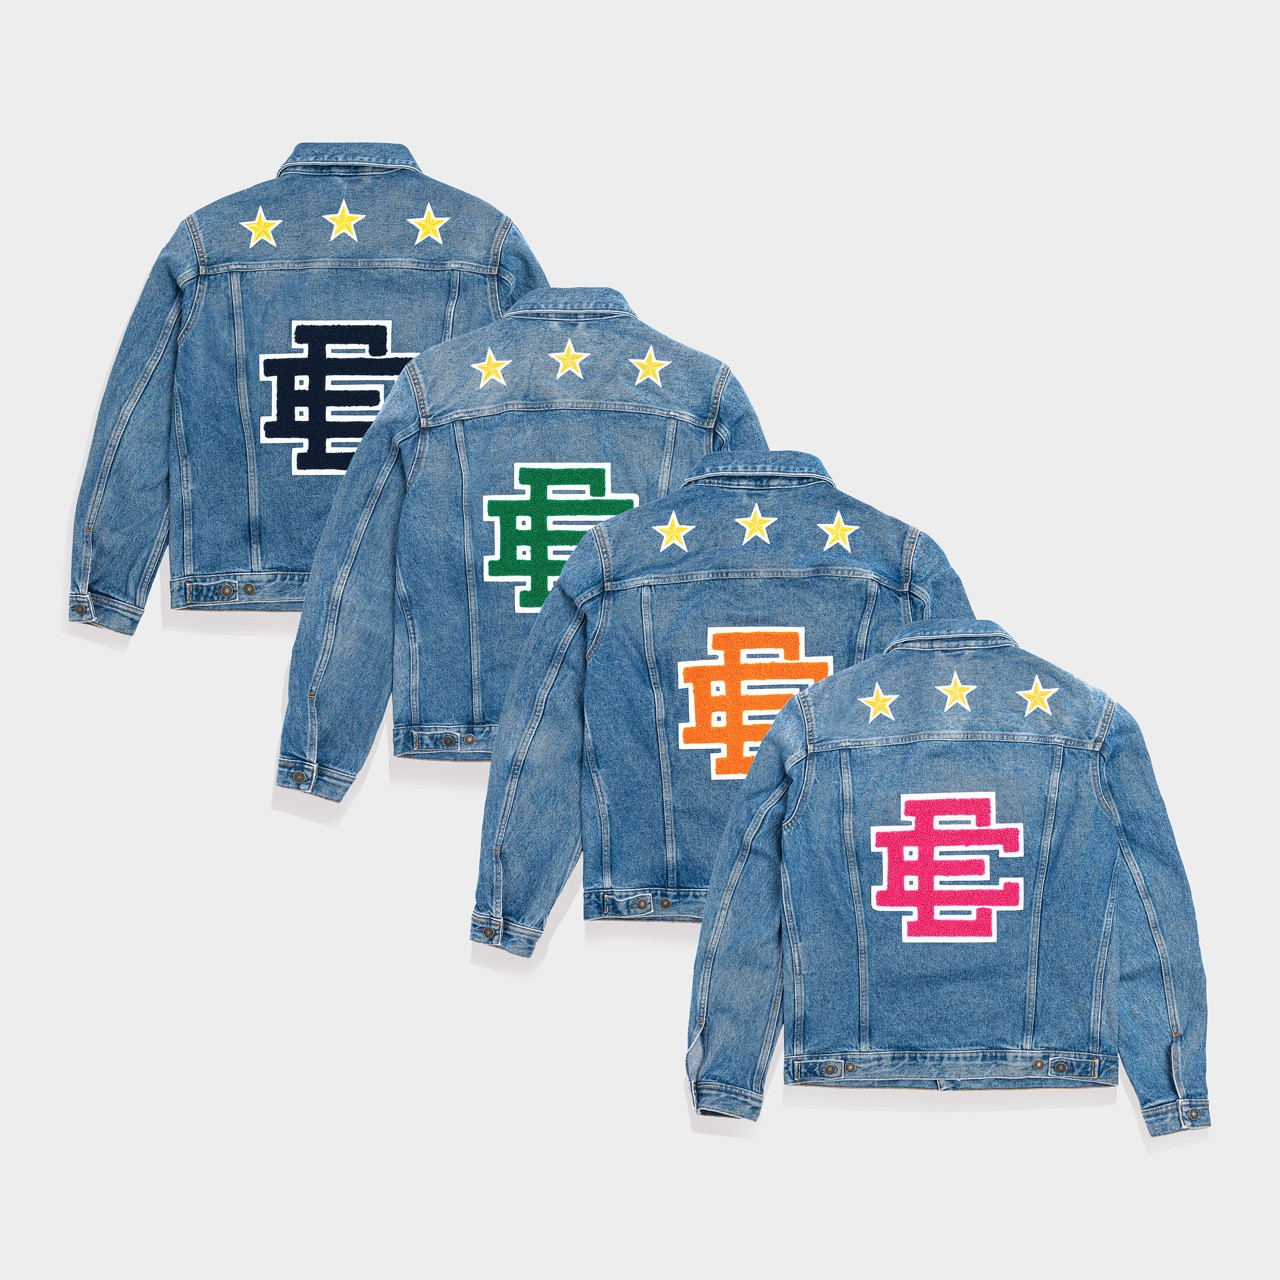 Eric Emanuel x Diesel Fall/Winter 2020 Collaboration fw20 mesh shorts denim jacket tee shirt release date info buy